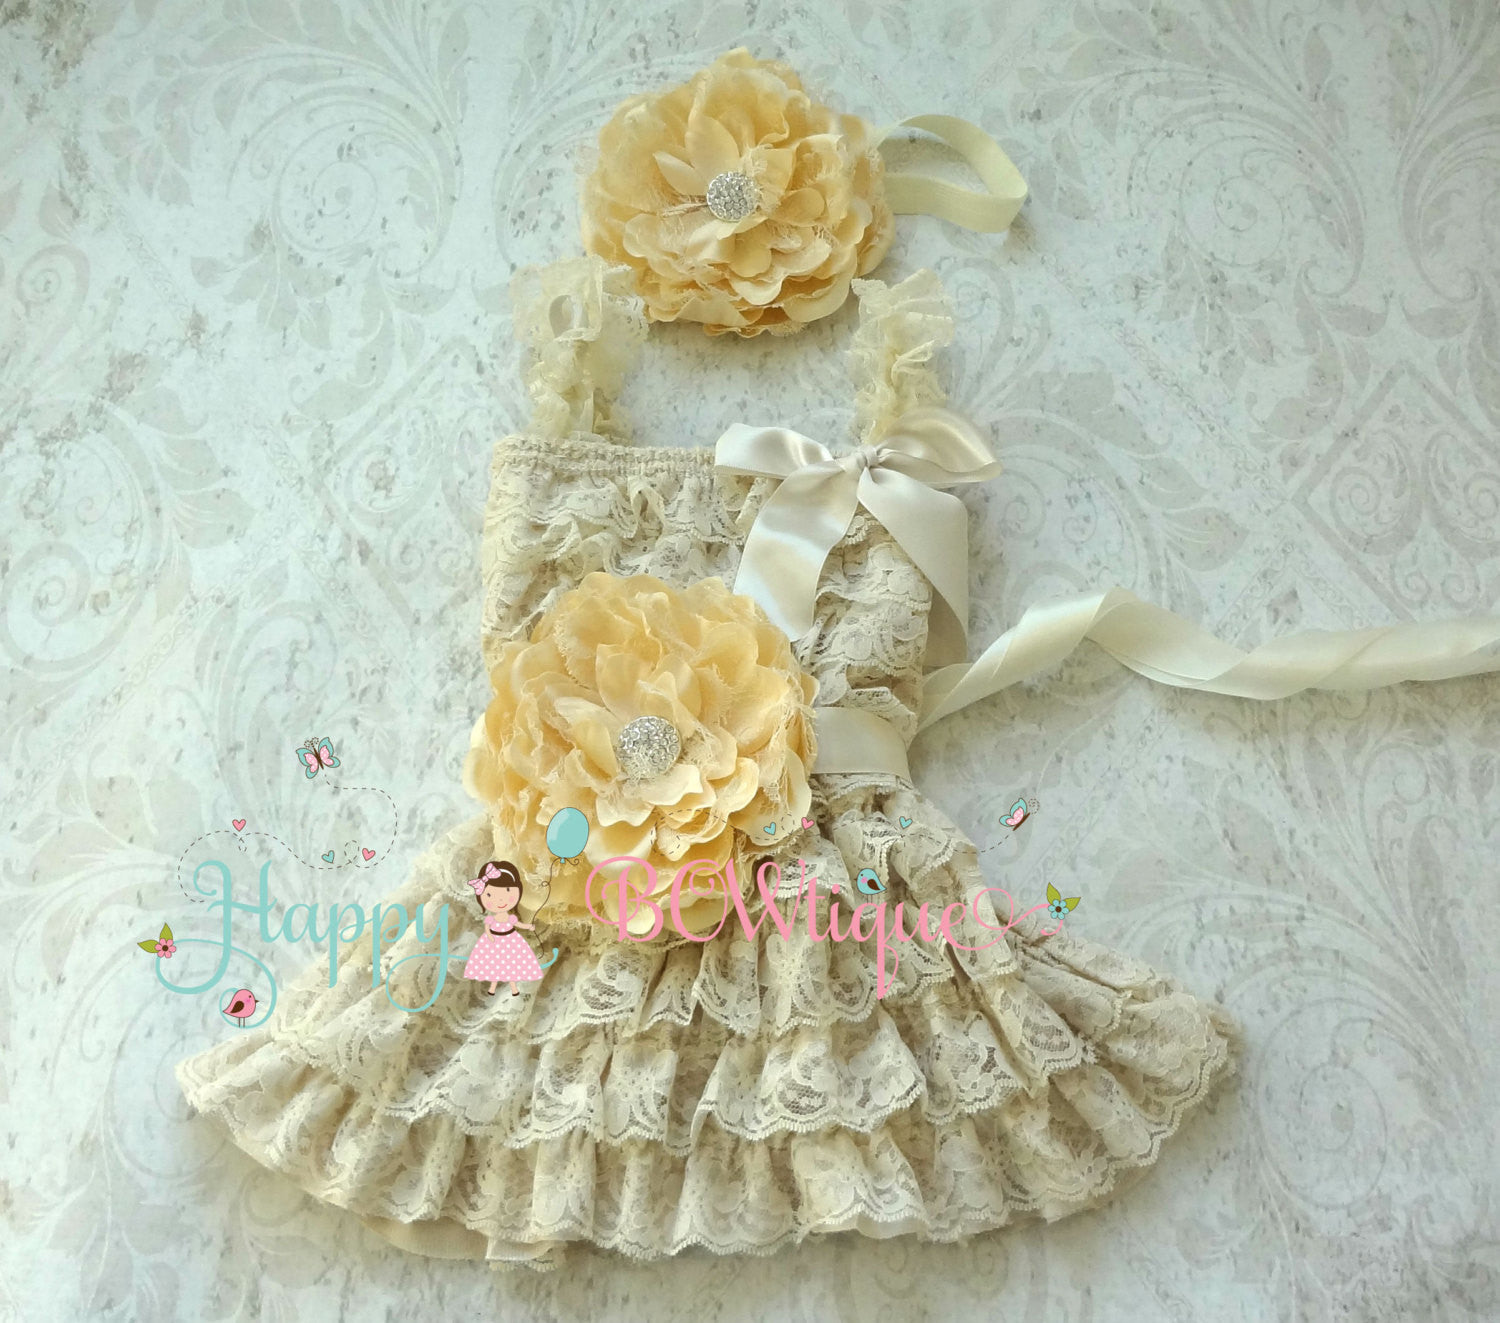 Flower girls dress/ Champage Peony Flower Girl's Lace Dress set - Happy BOWtique - children's clothing, Baby Girl clothing